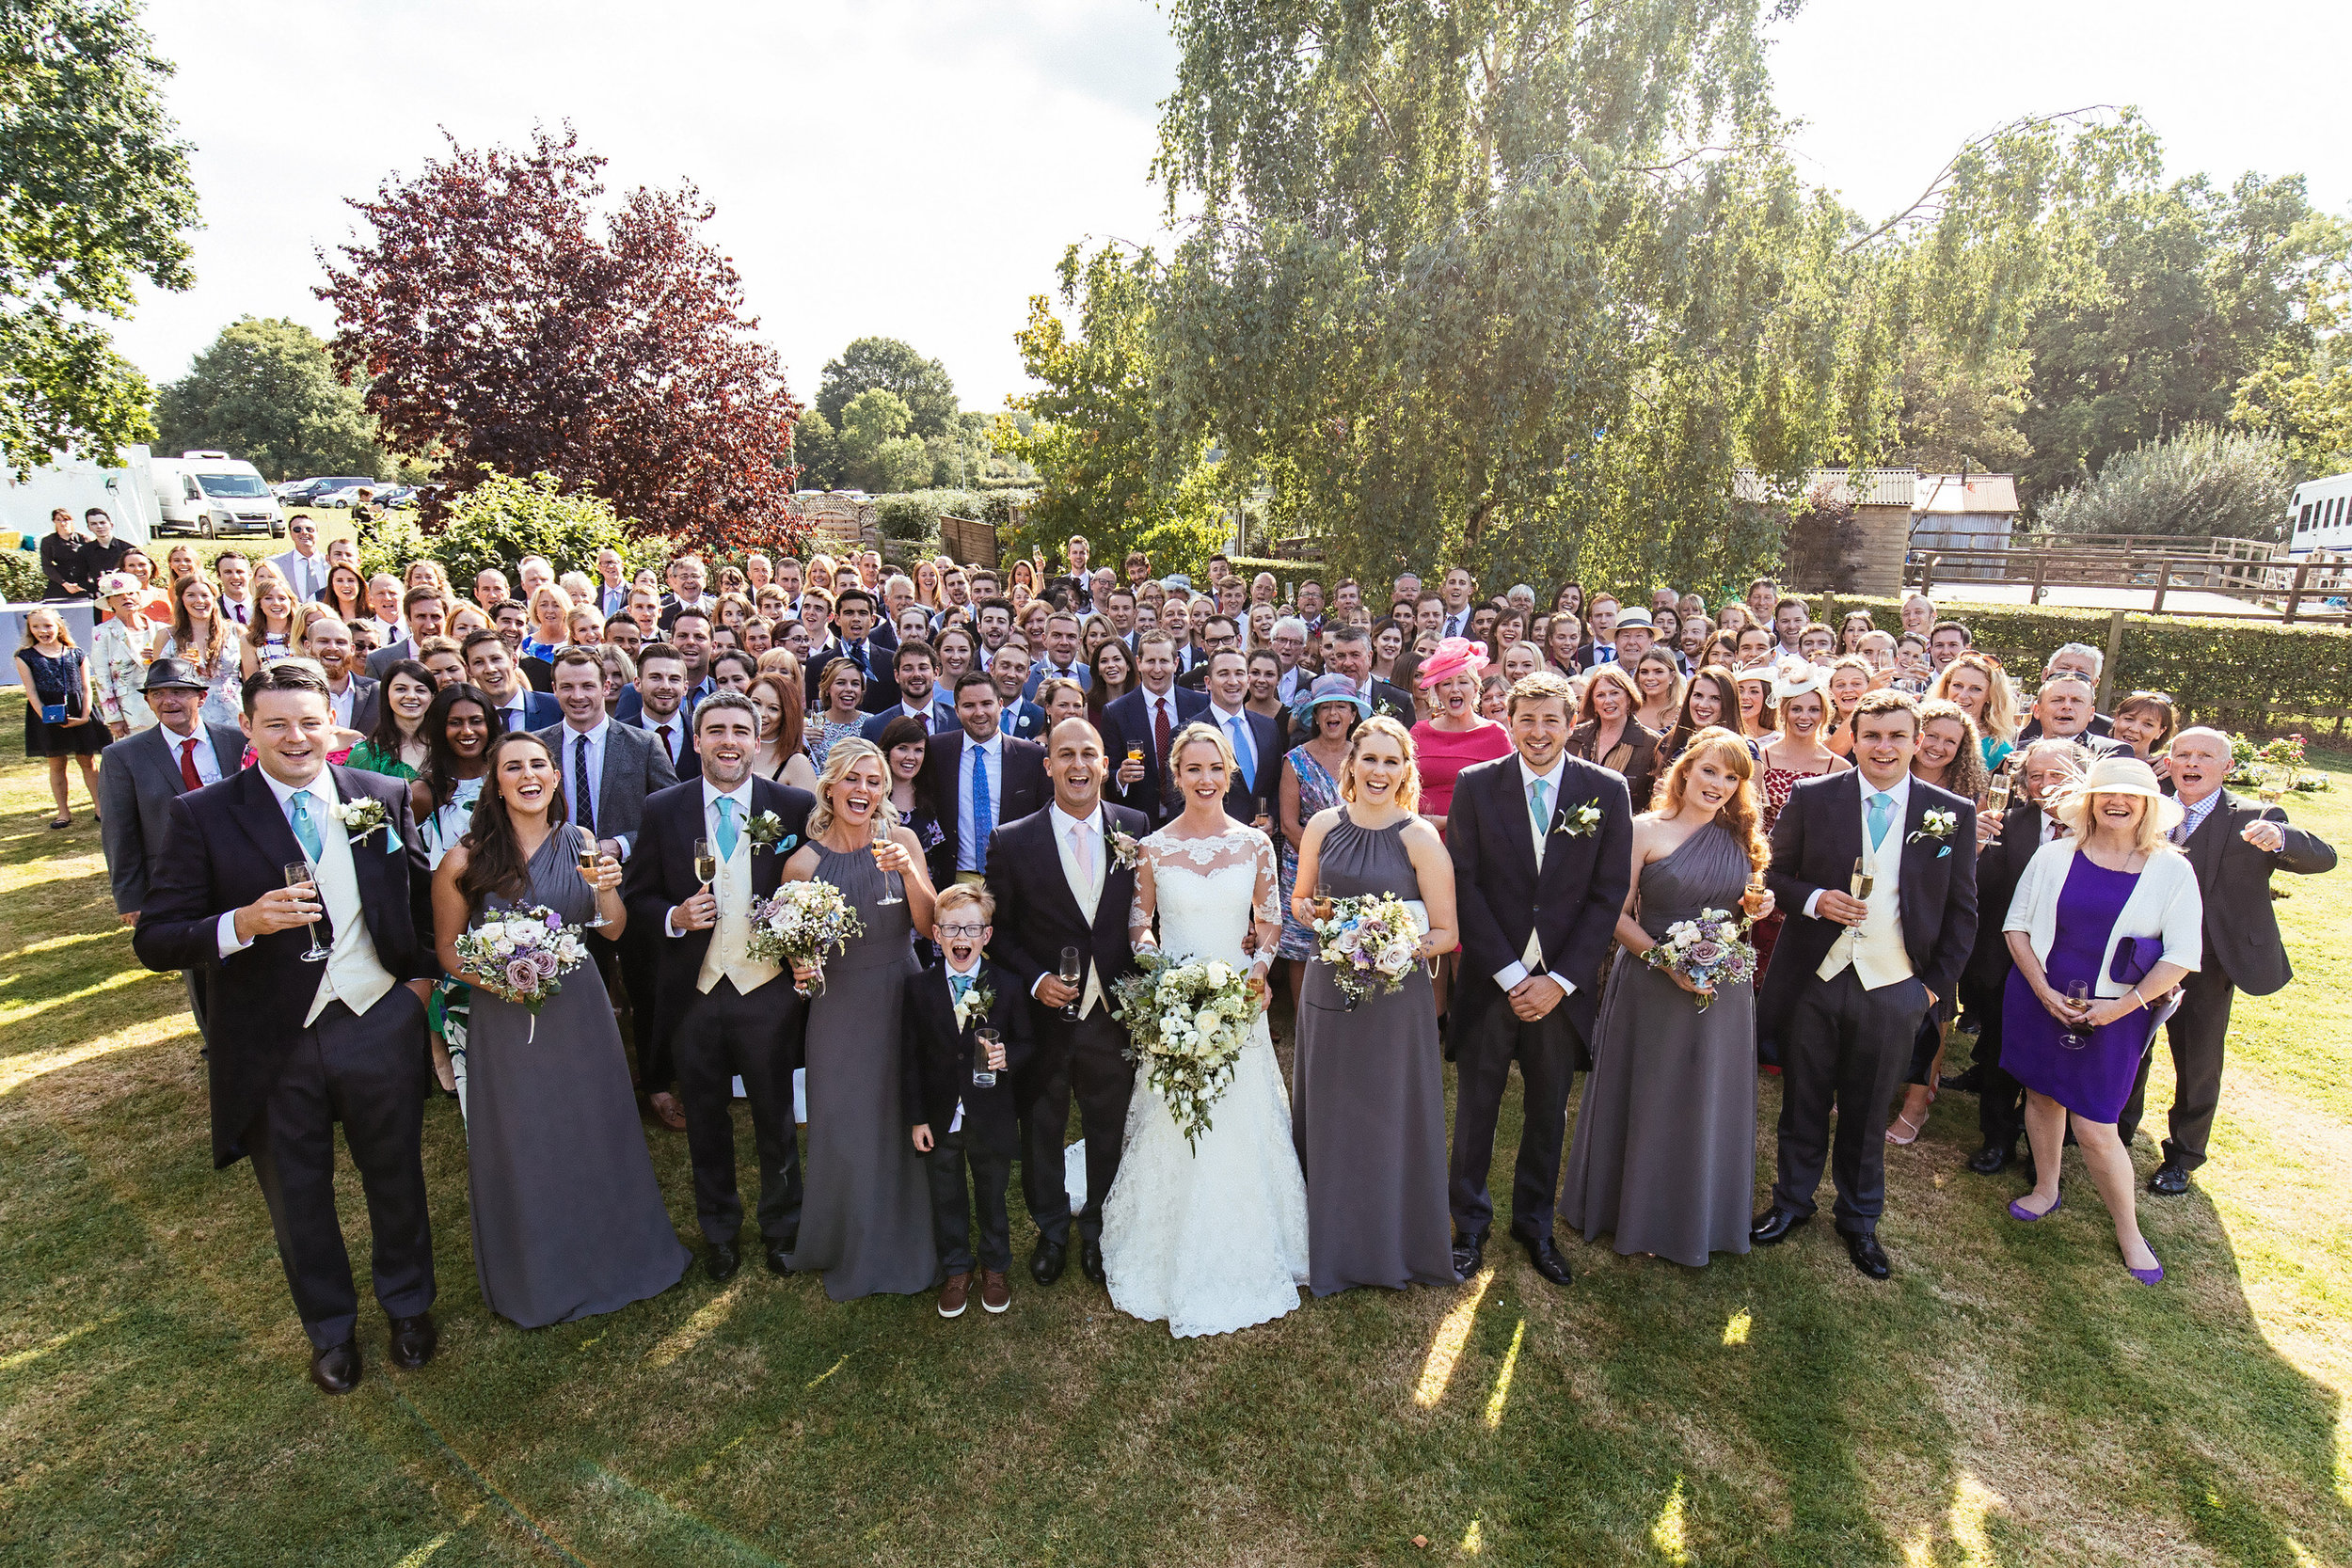 Biddenden Wedding Photographer 0092.jpg